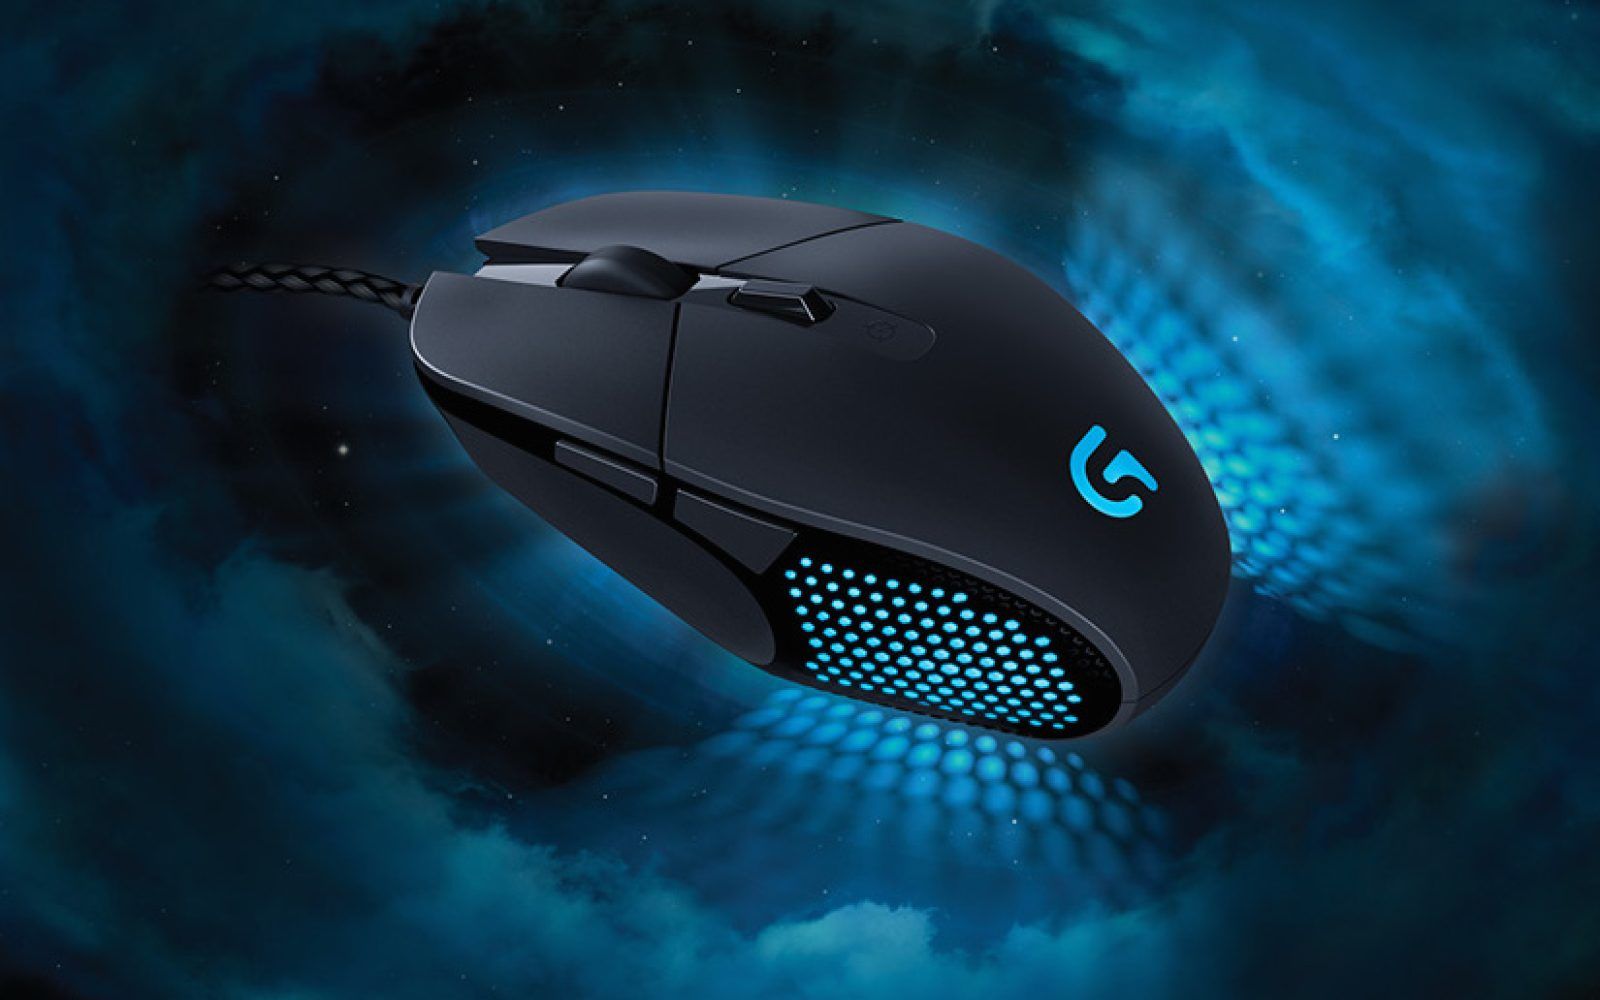 3e77eda209d Here's Logitech's next gen Daedalus Apex gaming mouse with customizable RGB  lighting